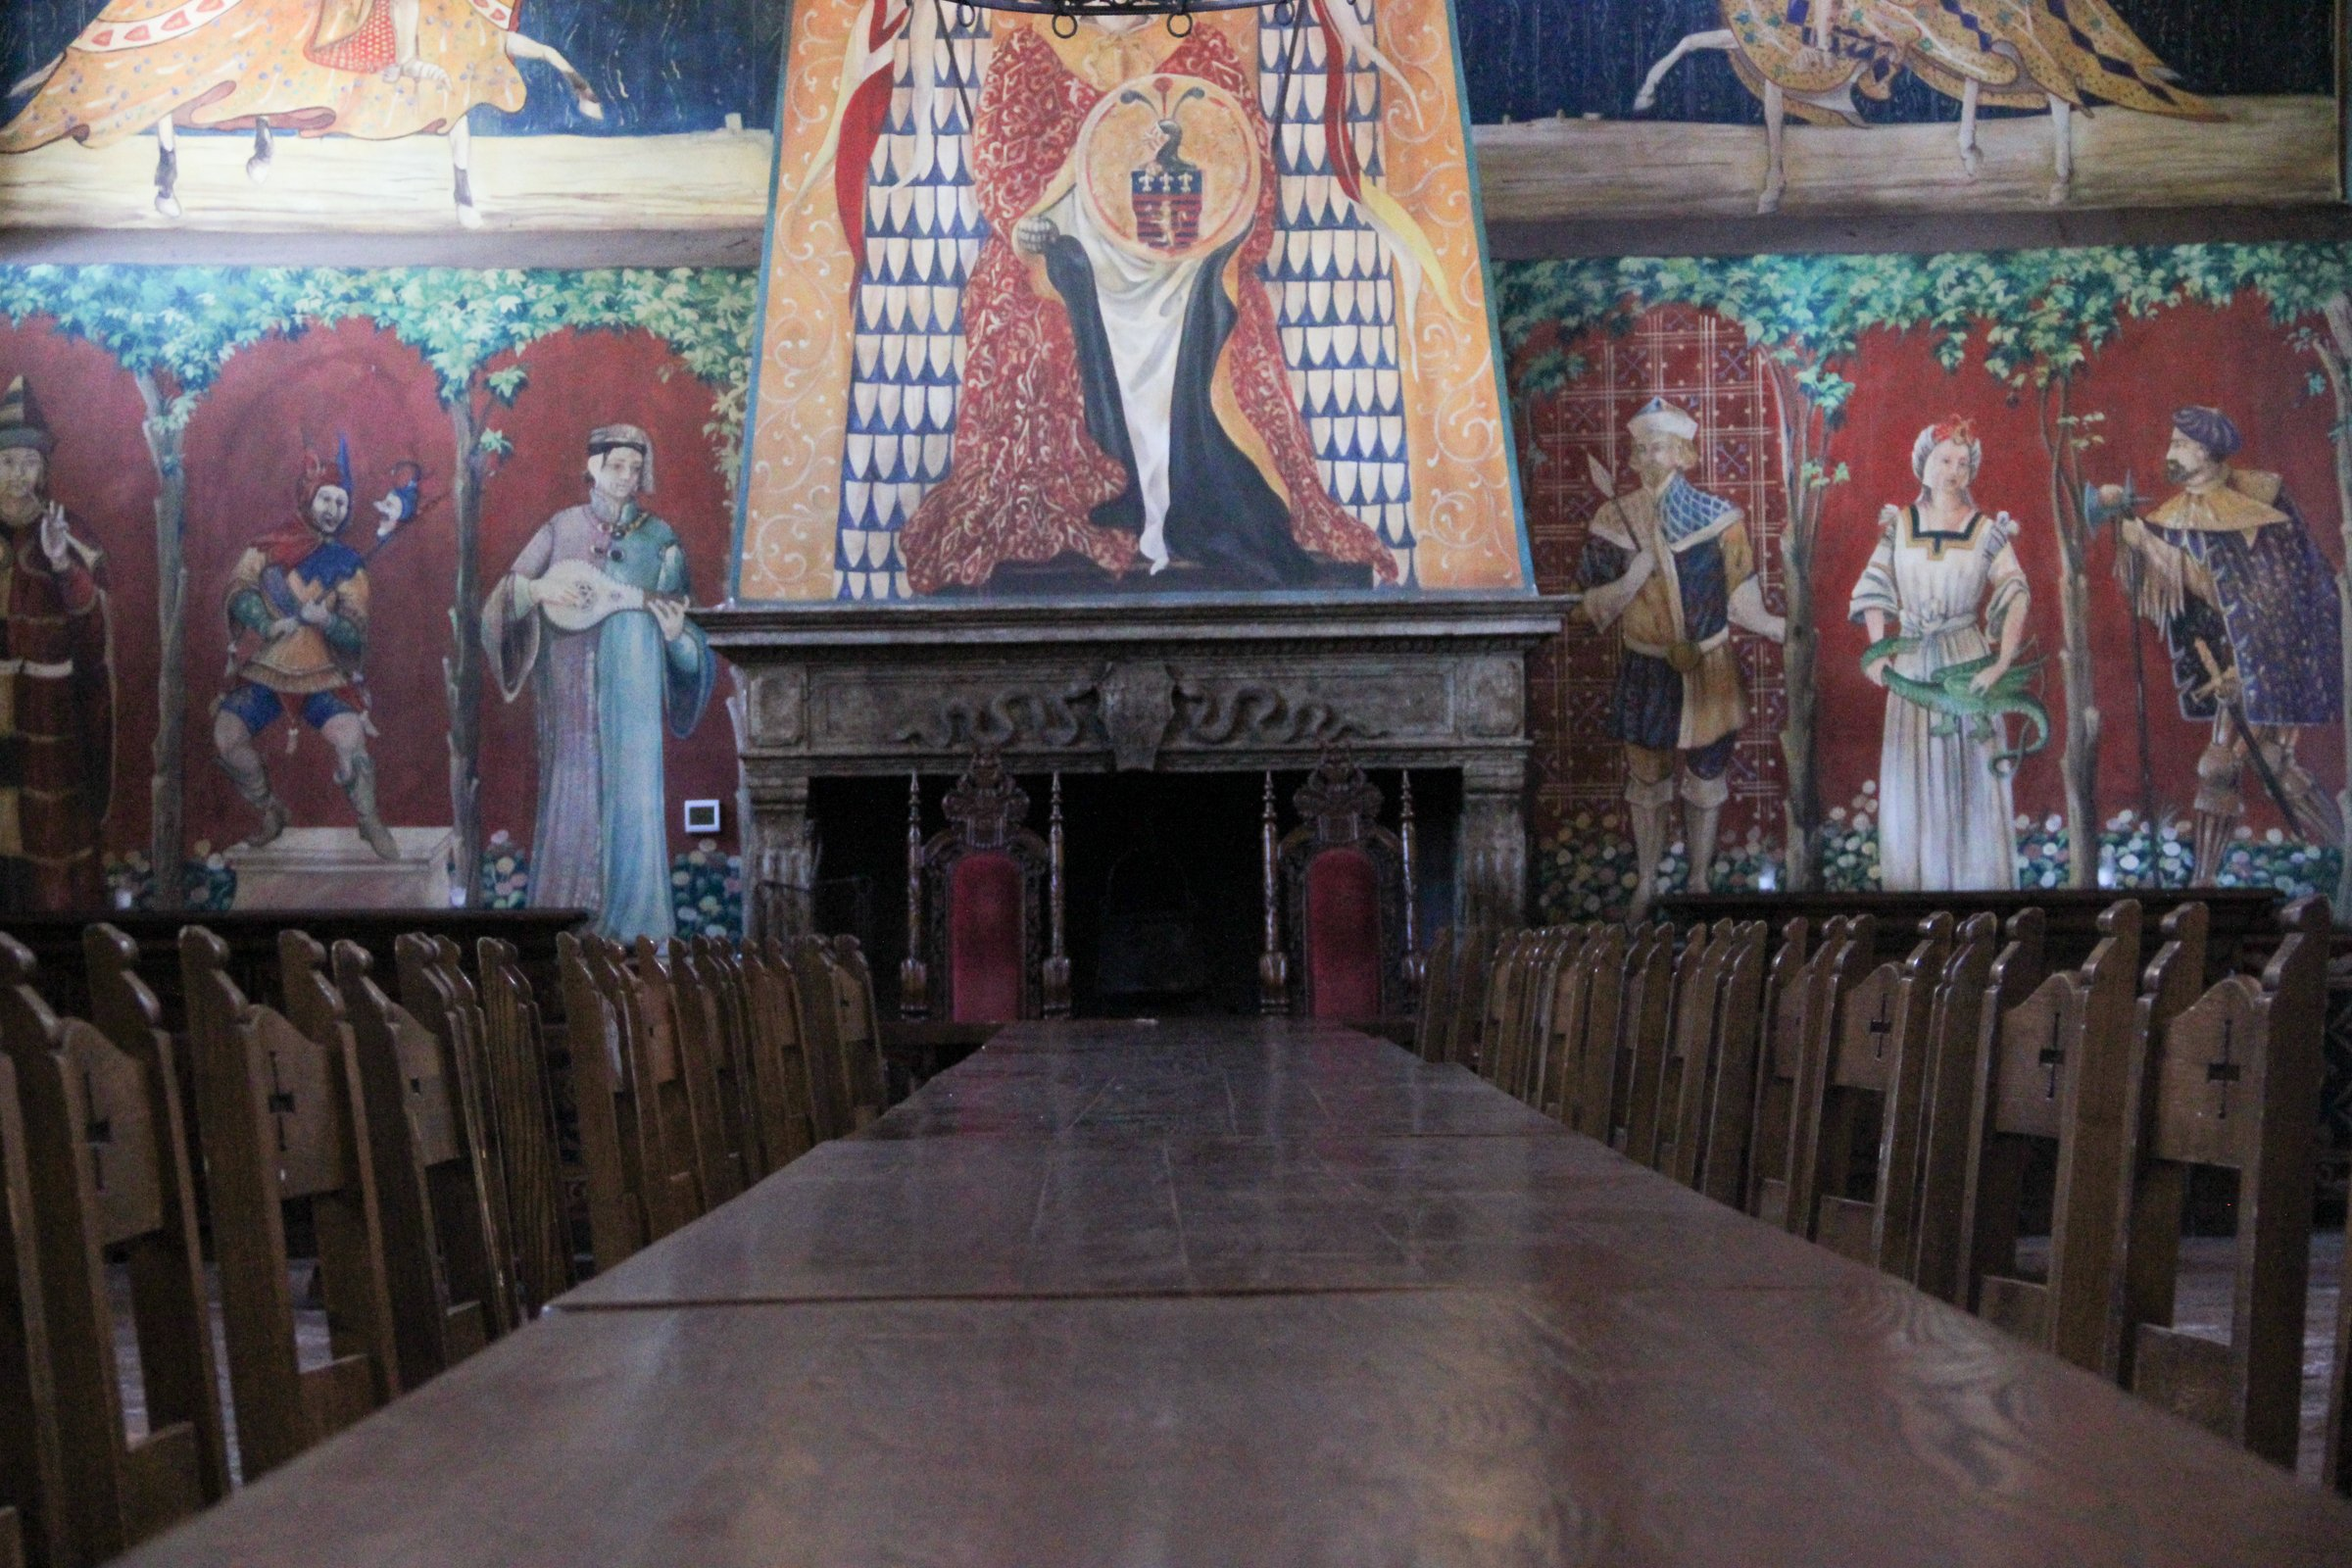 Long Banquet Table in Medieval Room